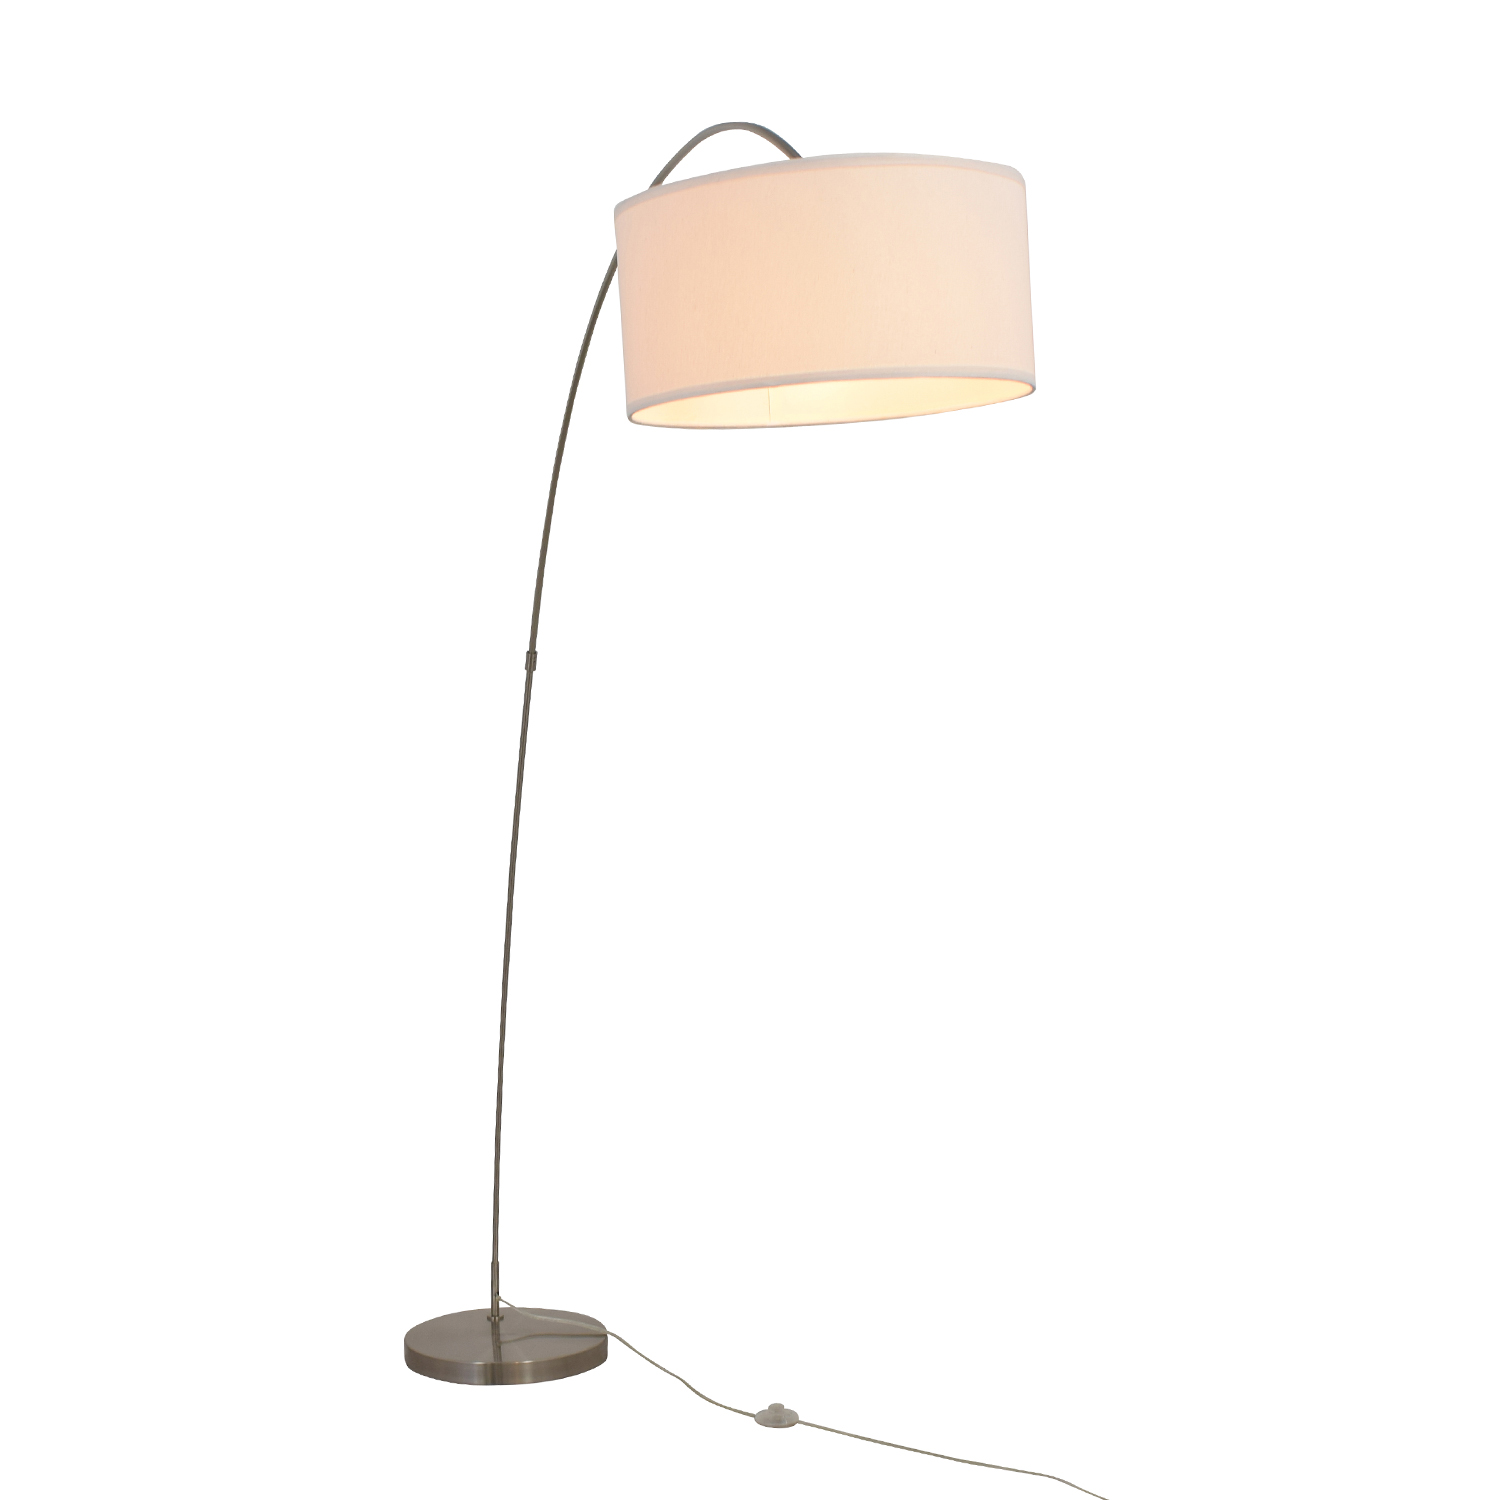 shop Artiva USA Adelina Floor Arc Lamp Artiva USA Lamps